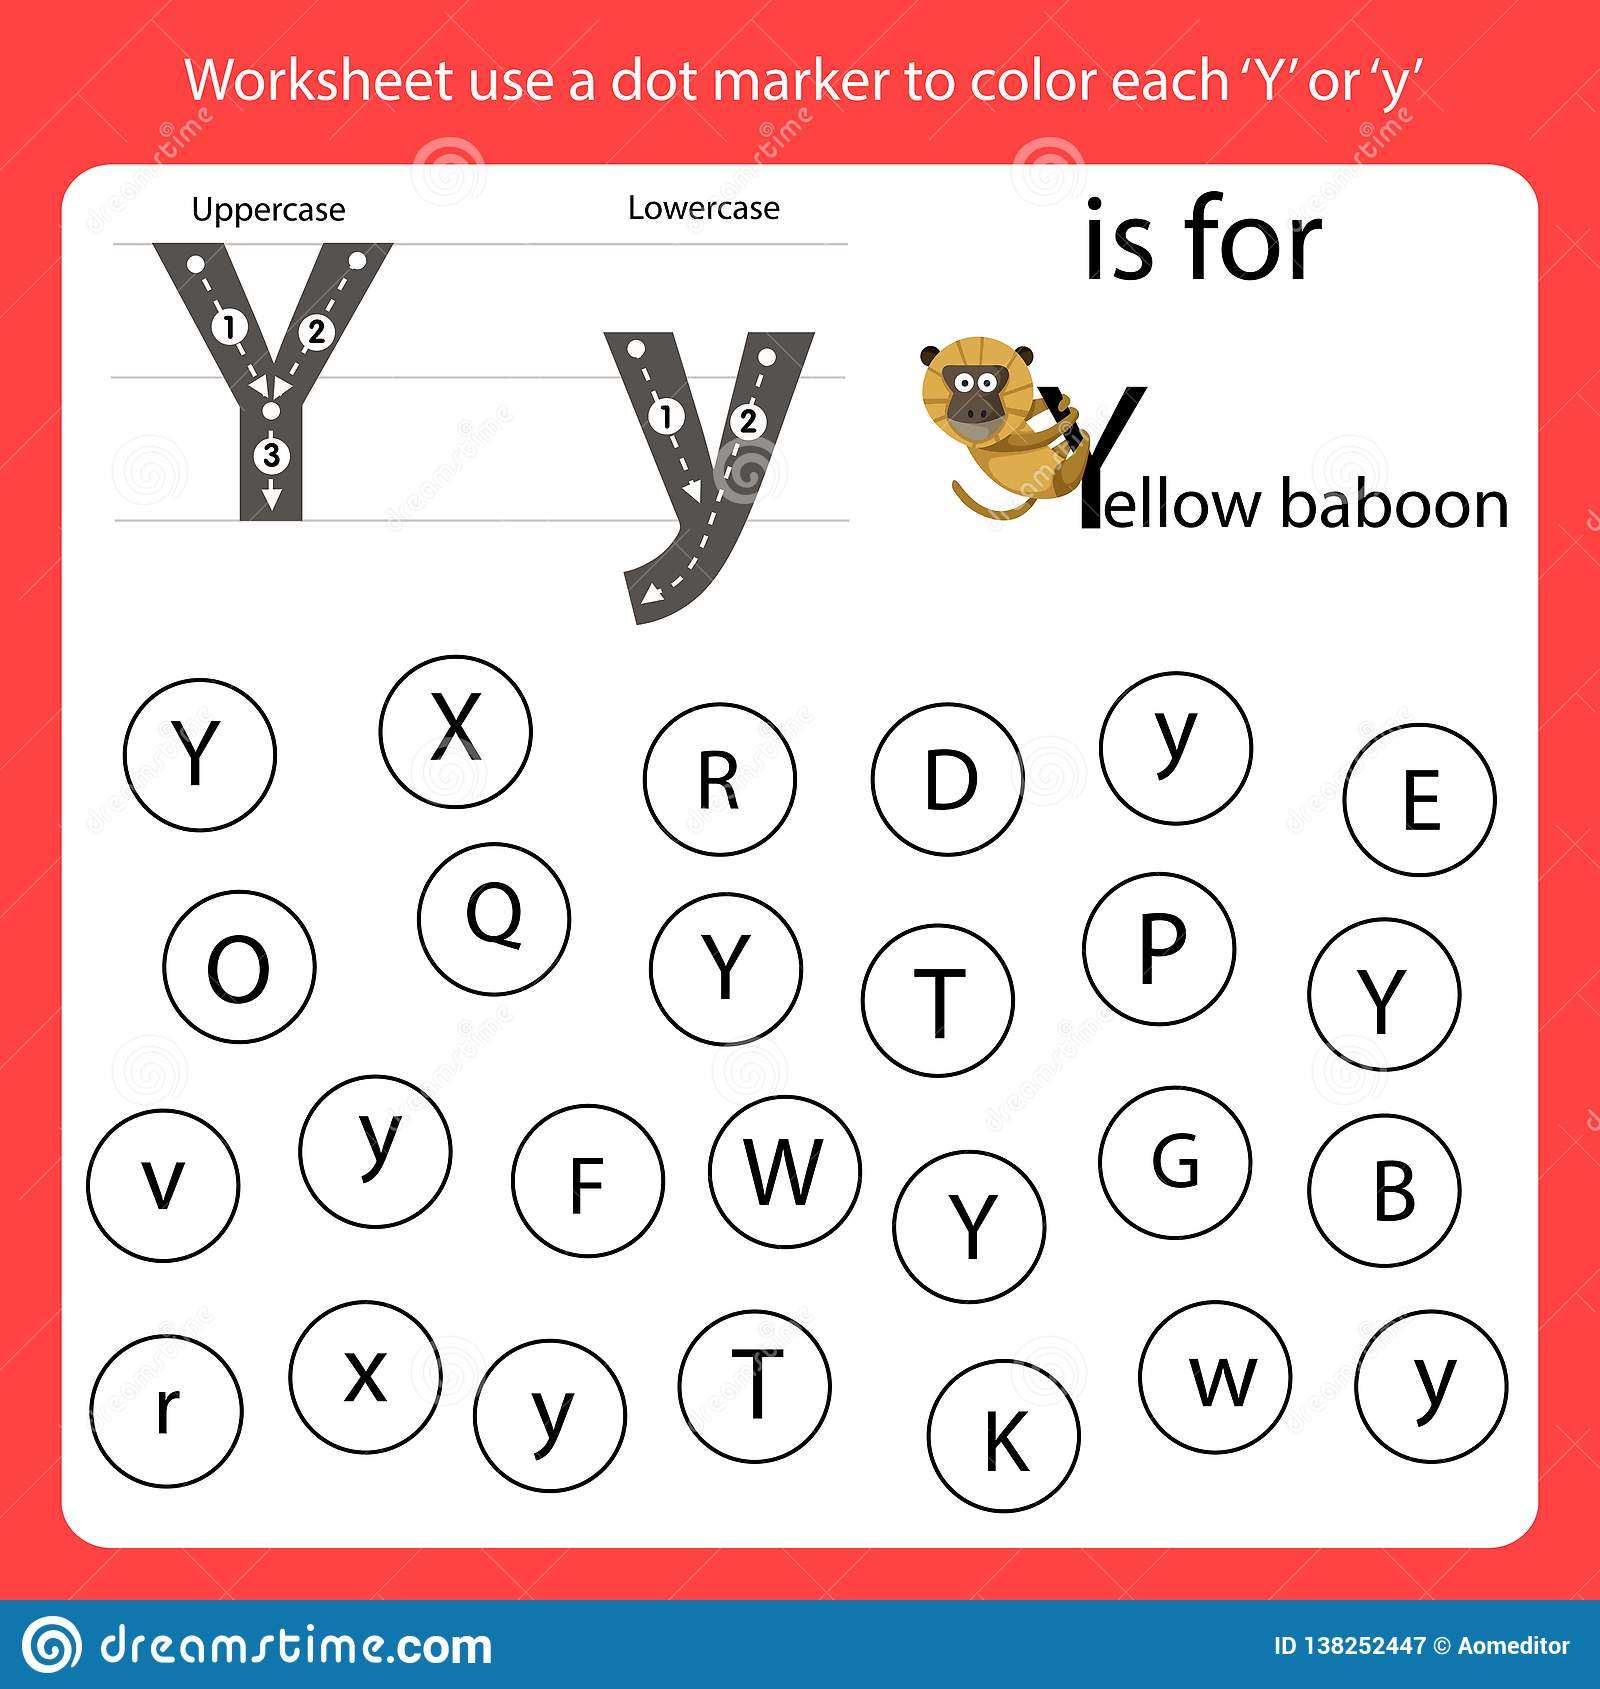 Find The Letter Worksheet Use A Dot Marker To Color Each Y